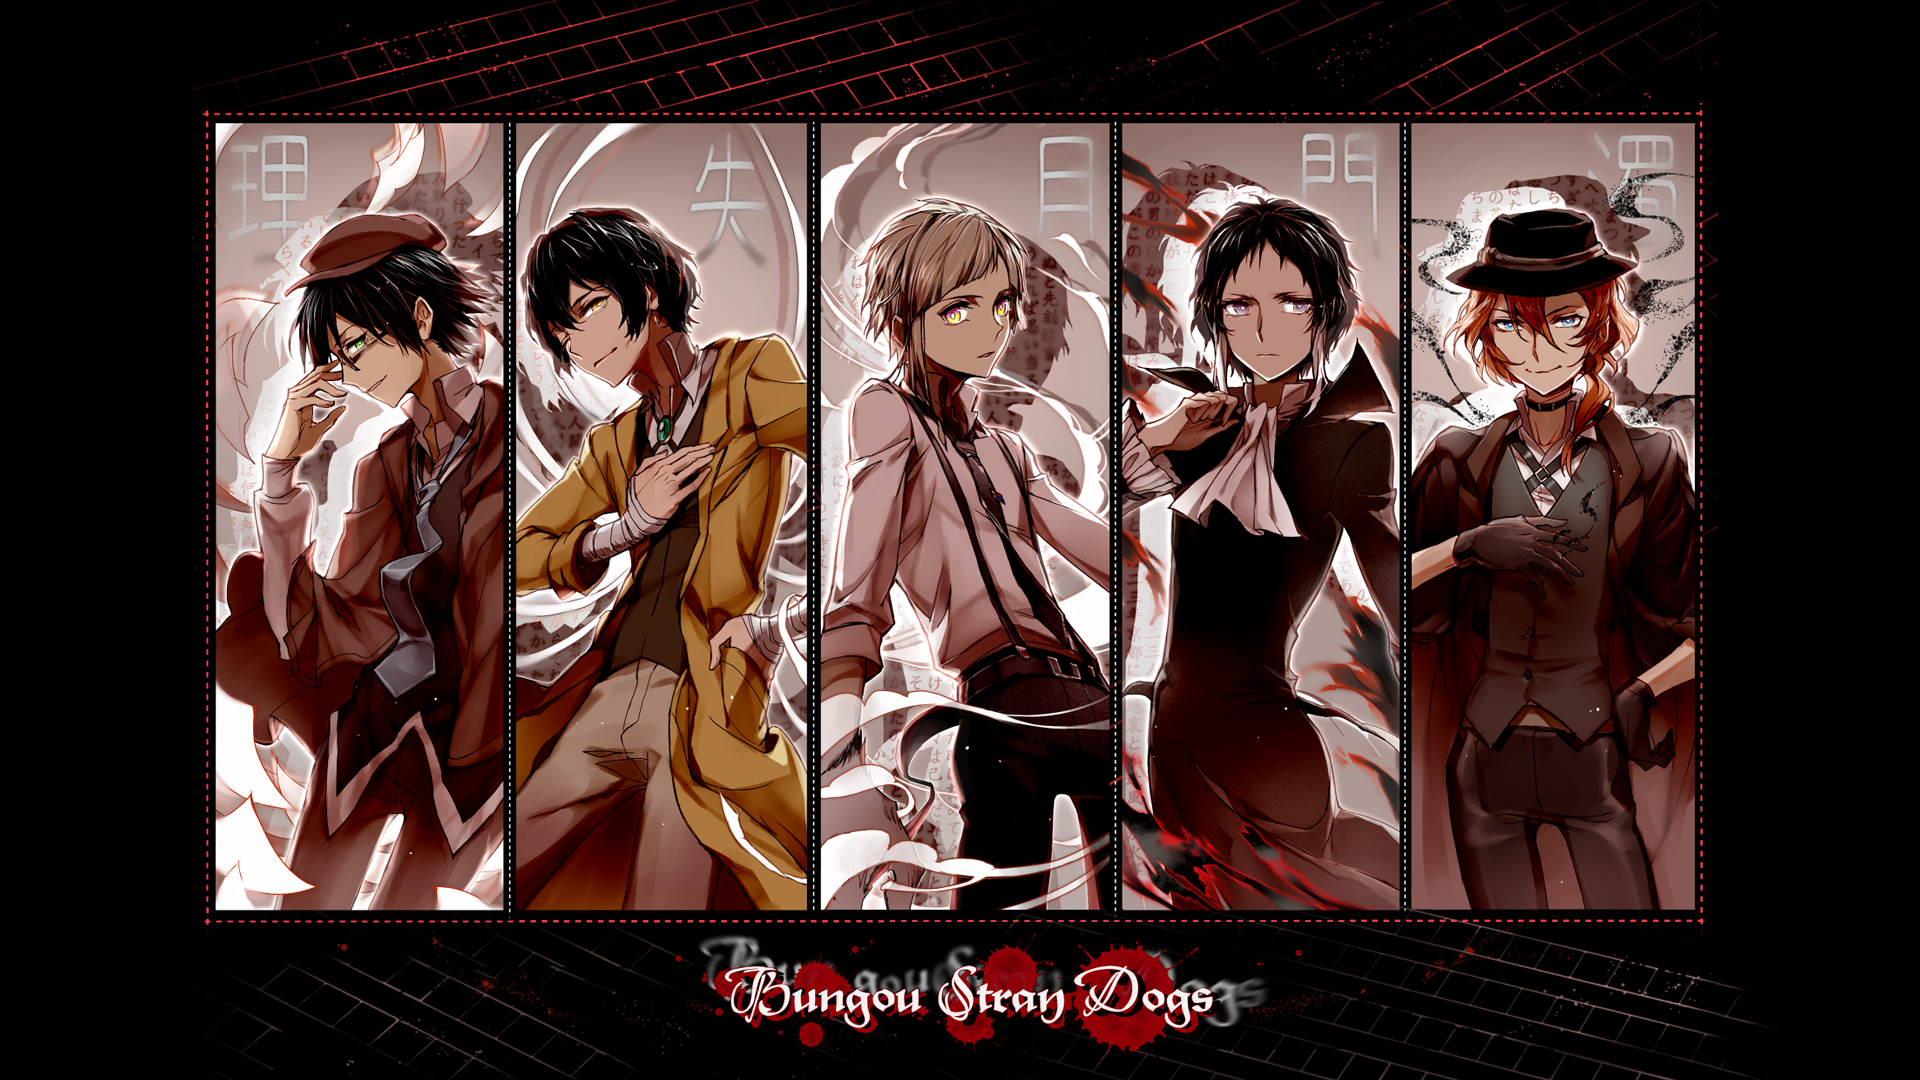 Download-HD-Bungo-Stray-Dogs-Anime-Walppaper-wallpaper-wpc5804371